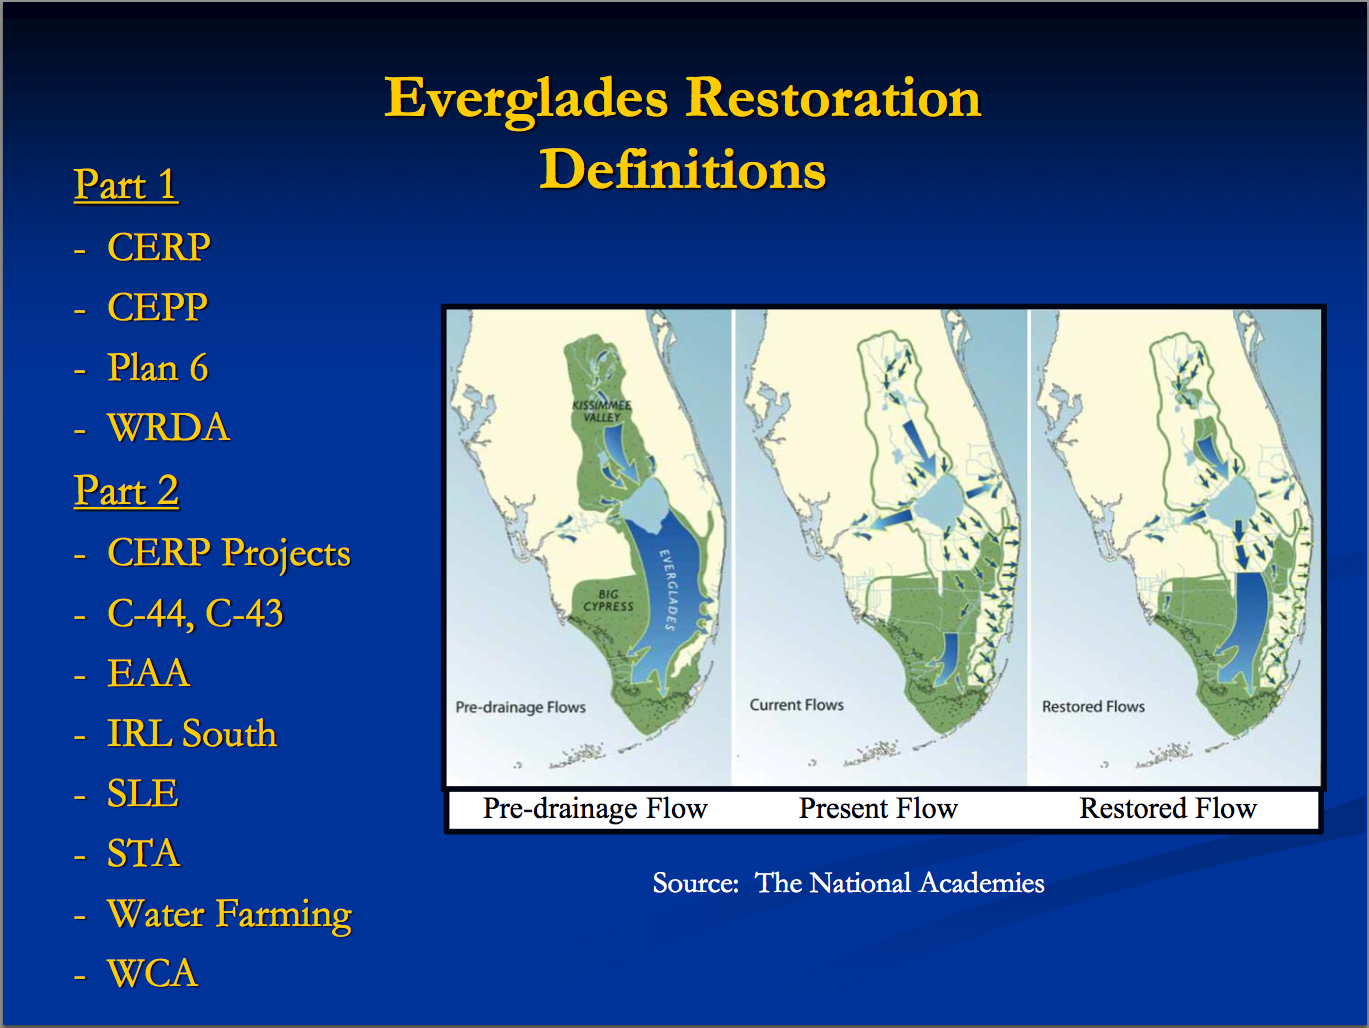 everglades restoration essay This 753 word essay is about everglades, flooded grasslands and savannas, everglades national park, airboat, restoration of the everglades read the full essay now.